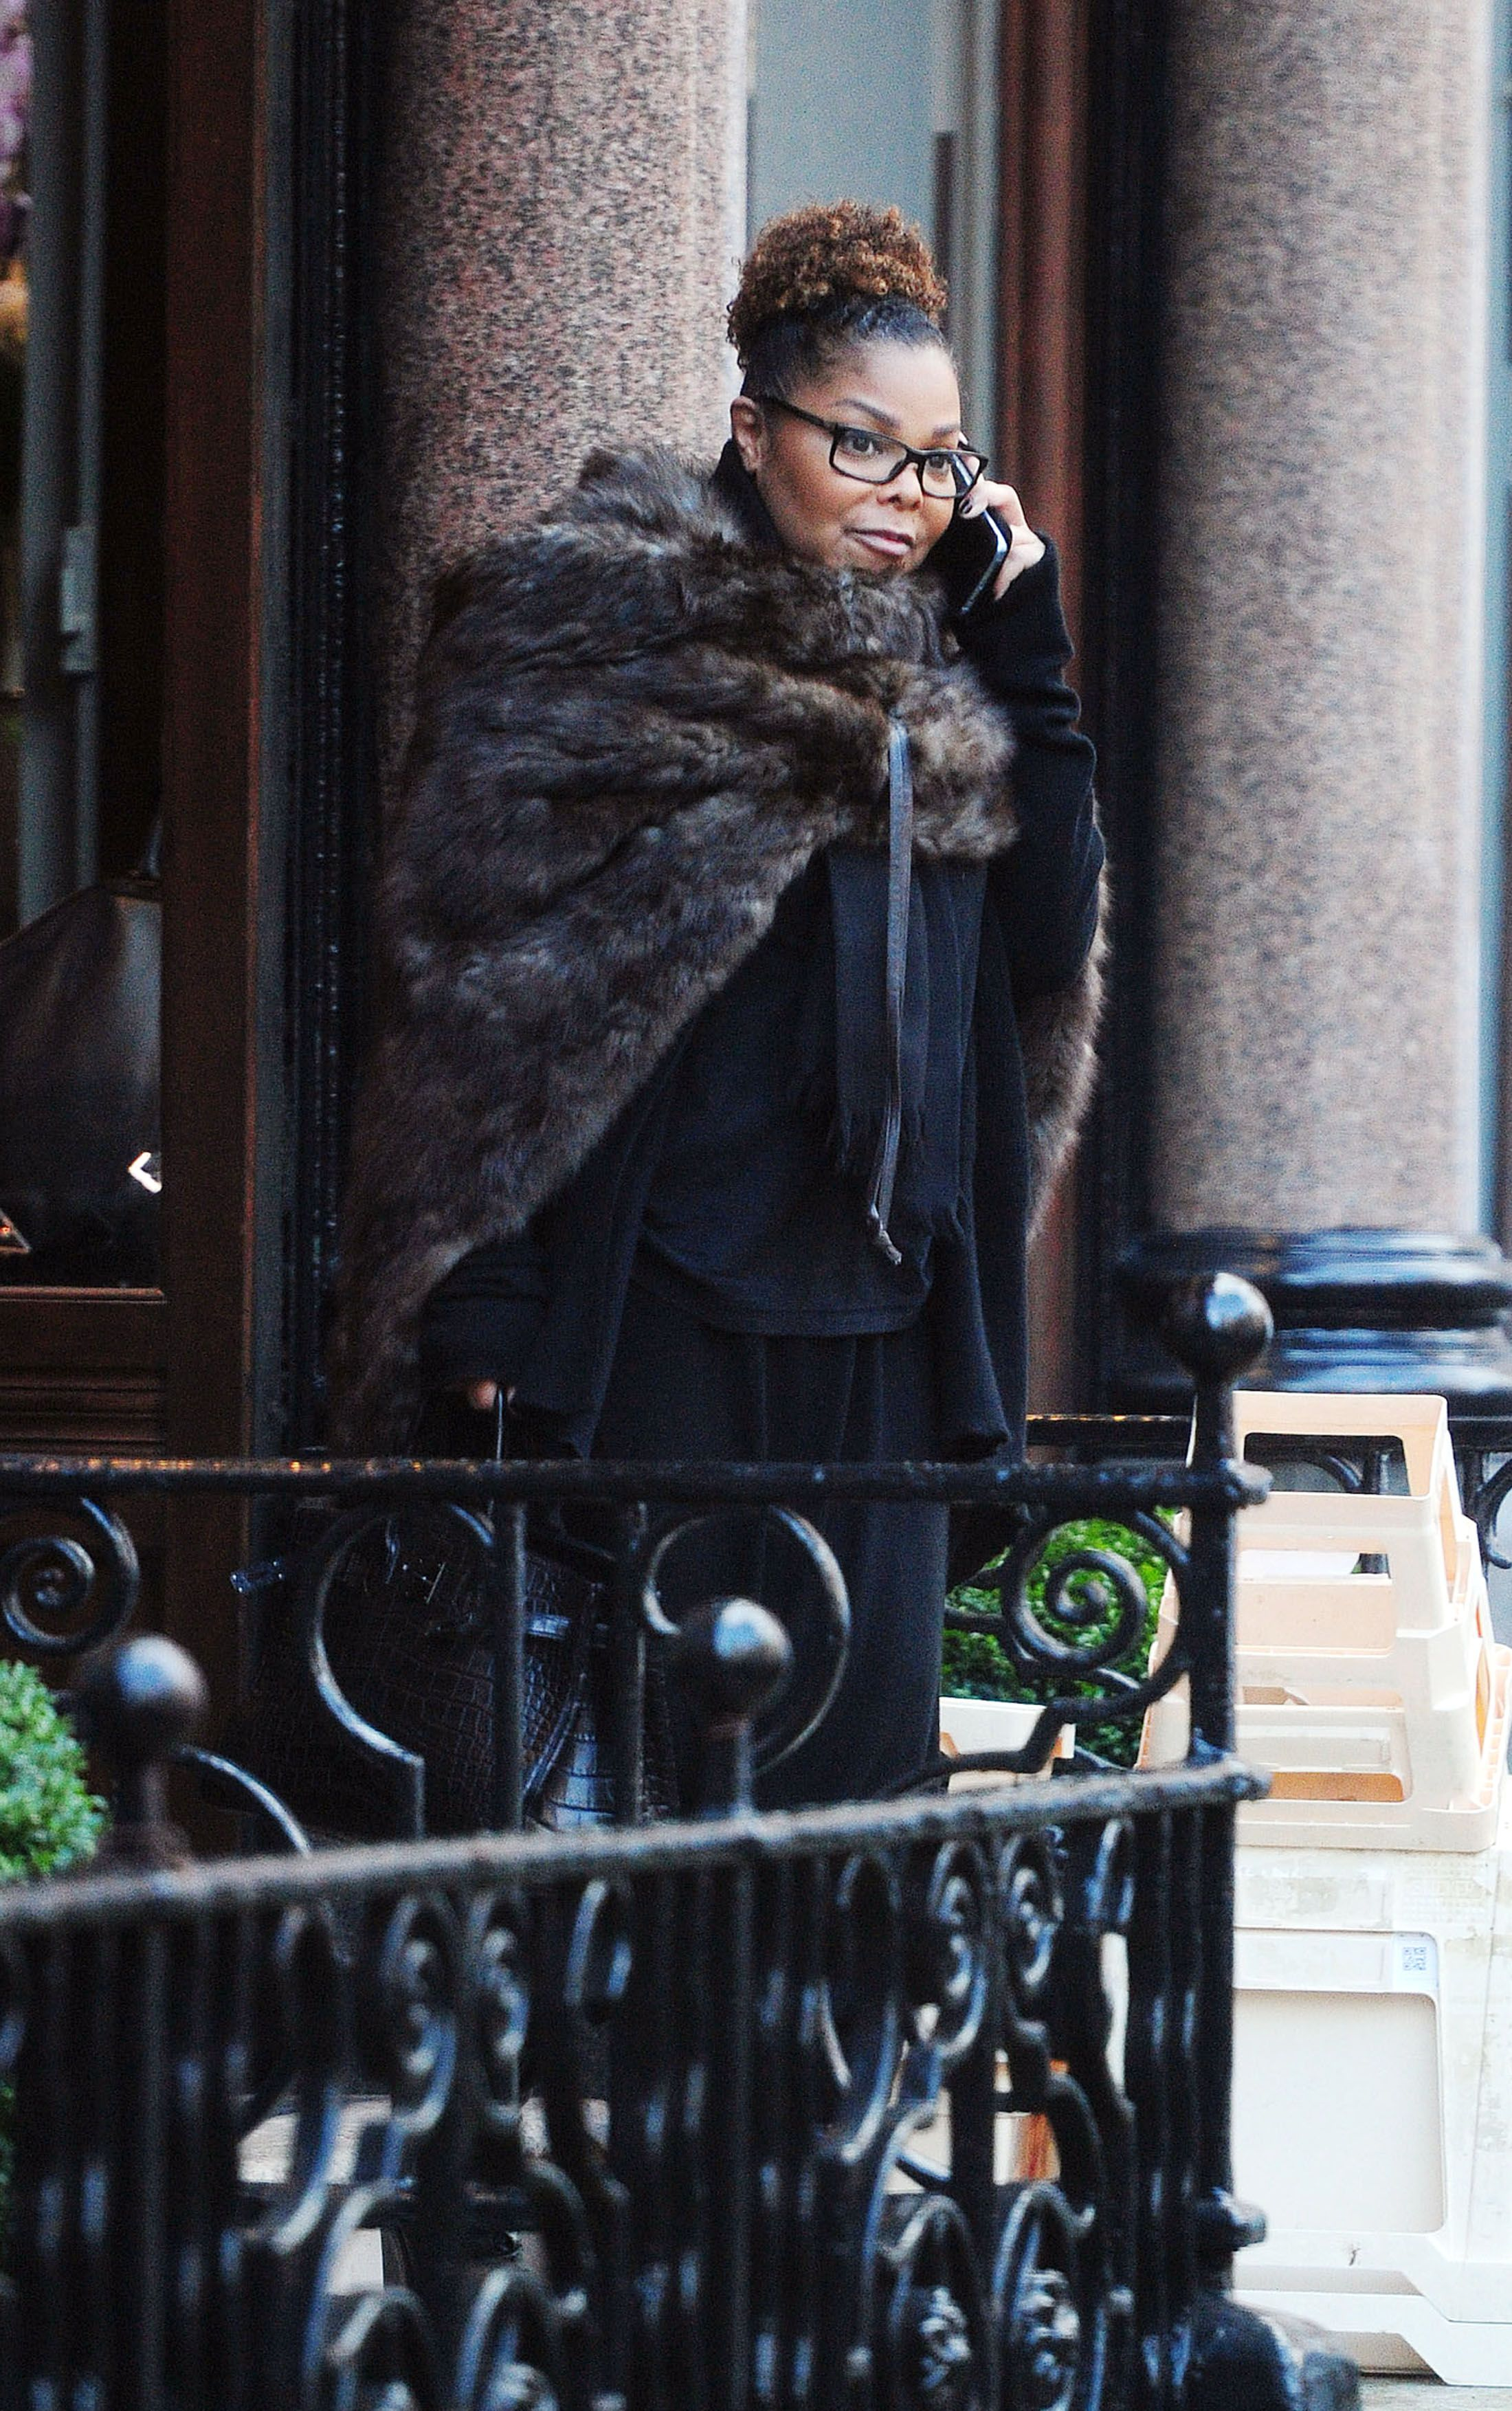 EXC - Janet Jackson show post baby figure while out in London